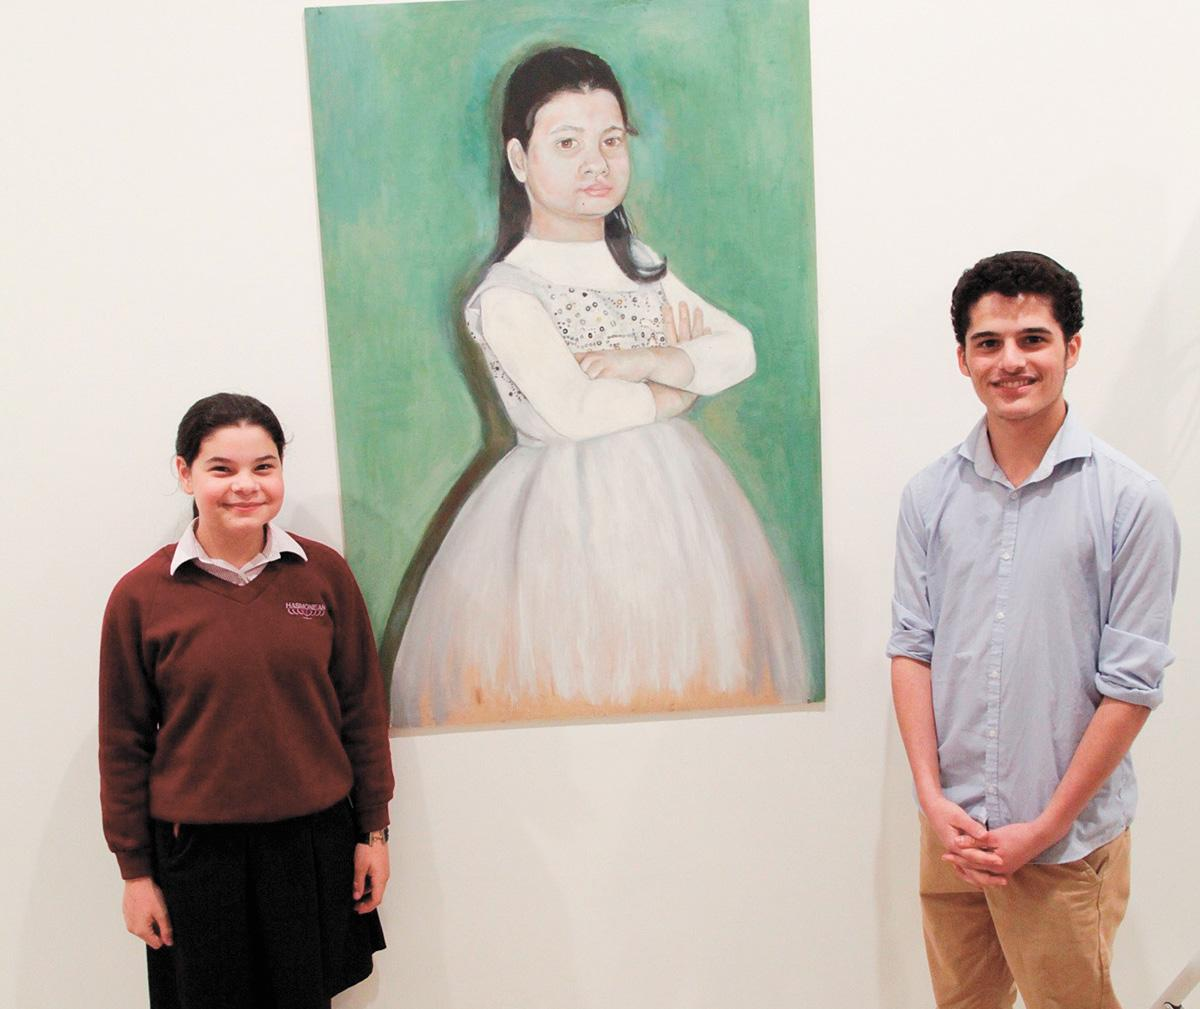 Chani and Shemi with the award-winning painting